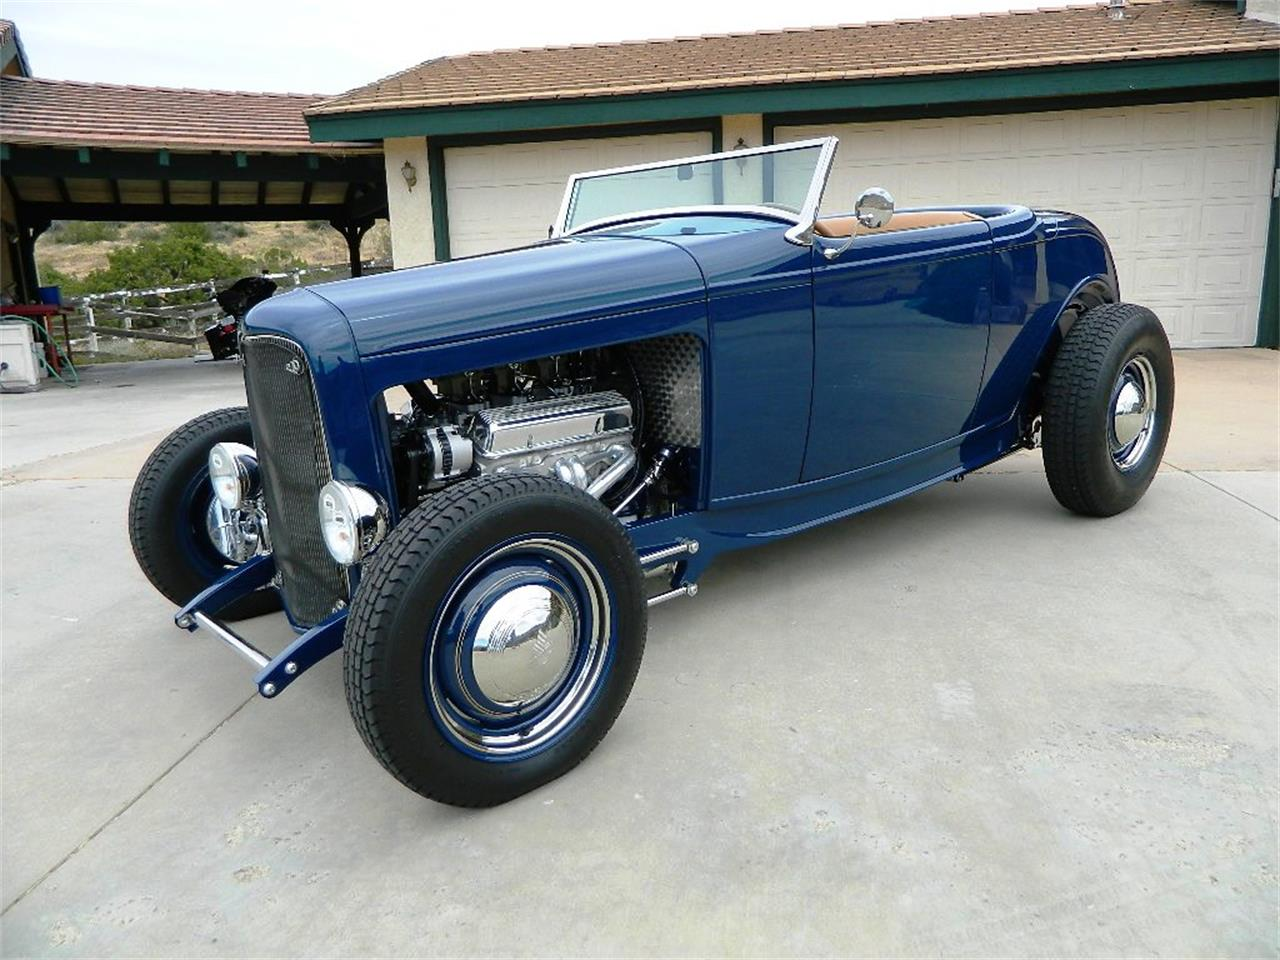 Large Picture of Classic 1932 Ford Roadster - $129,999.00 Offered by Classic Car Marketing, Inc. - L1V9